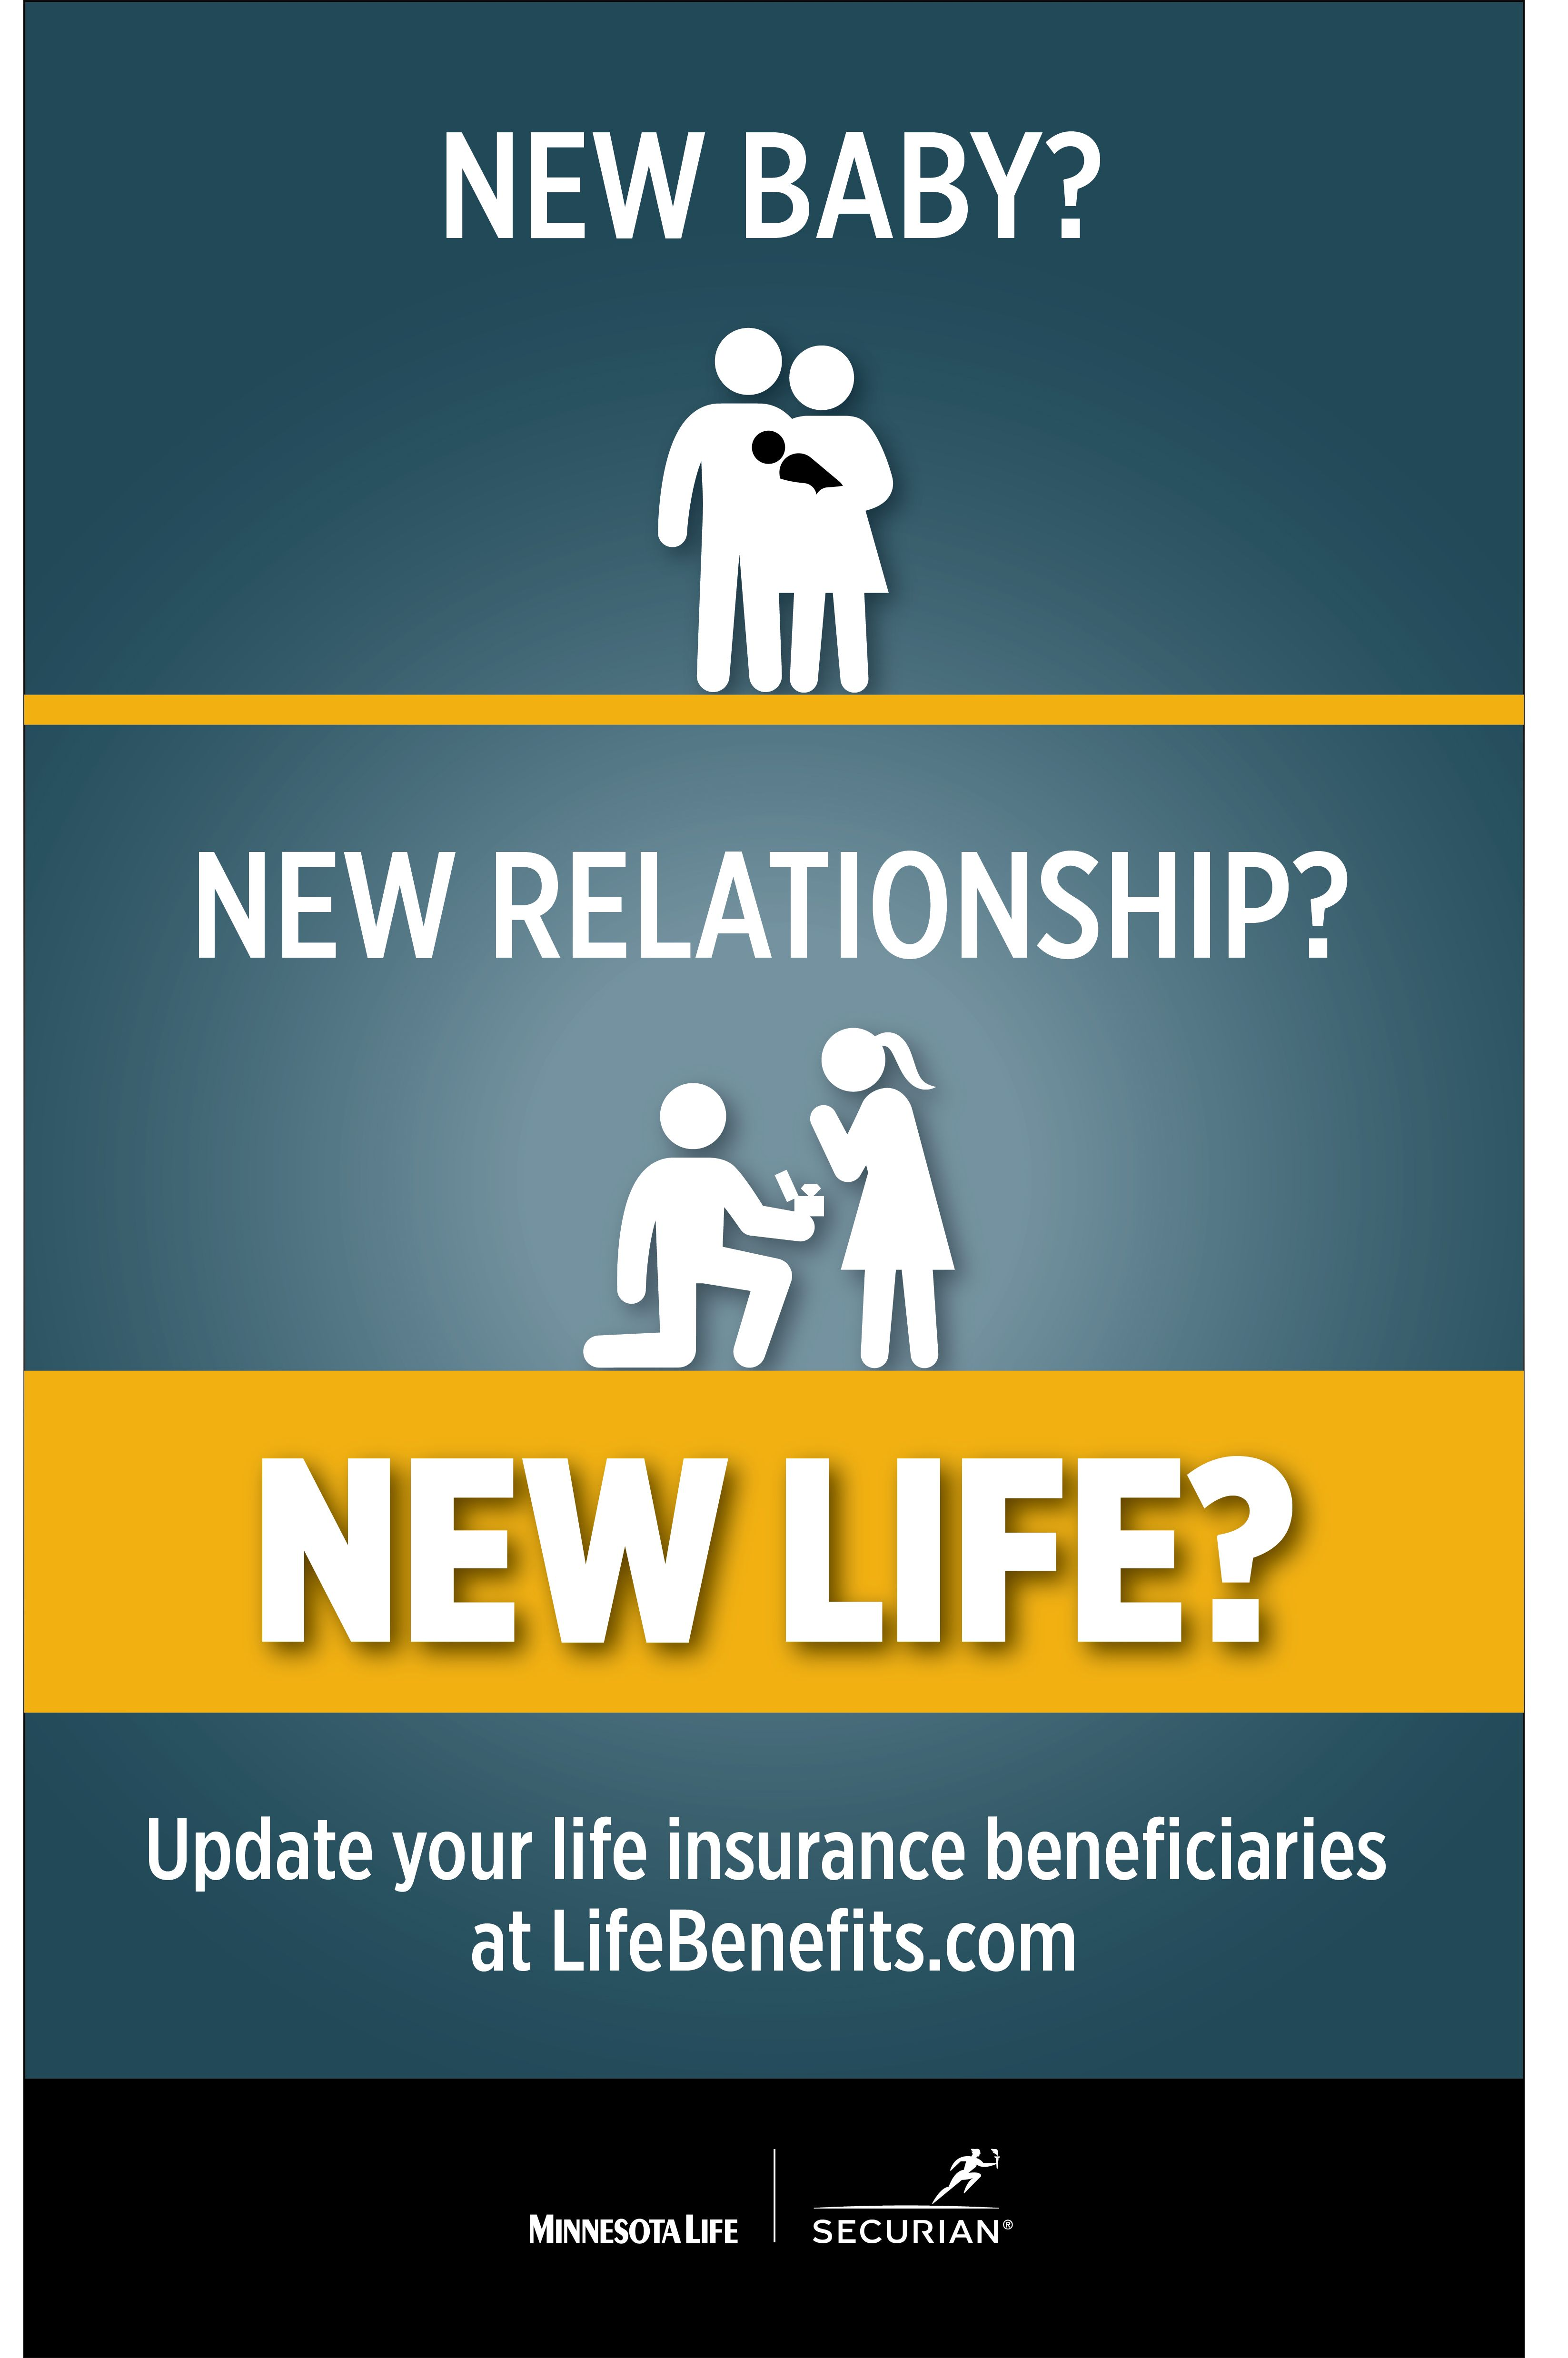 From Minnesota Life Insurance Company Life Insurance Beneficiary Life Insurance Companies Minnesota Life